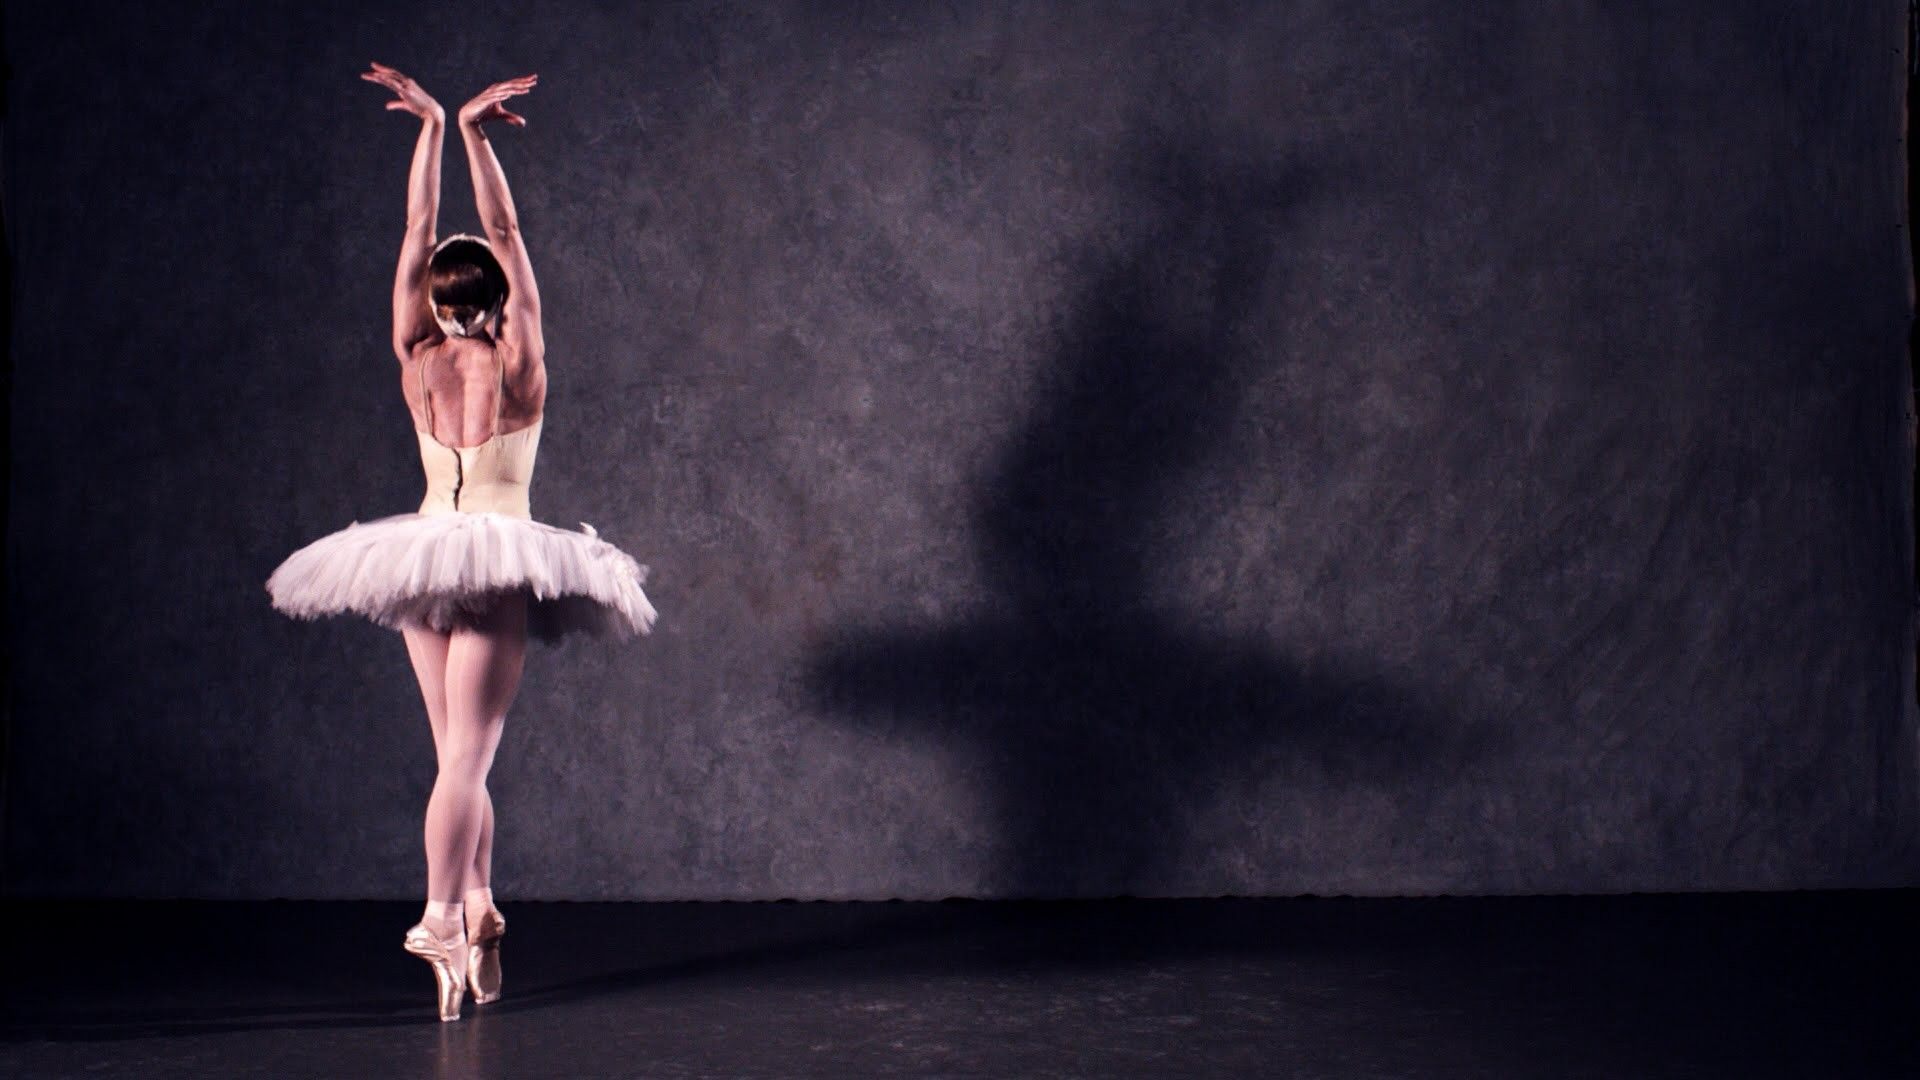 Ballet dance wallpapers with hd desktop 1920x1080 px 21259 kb ballet dance wallpapers with hd desktop 1920x1080 px 21259 kb voltagebd Image collections